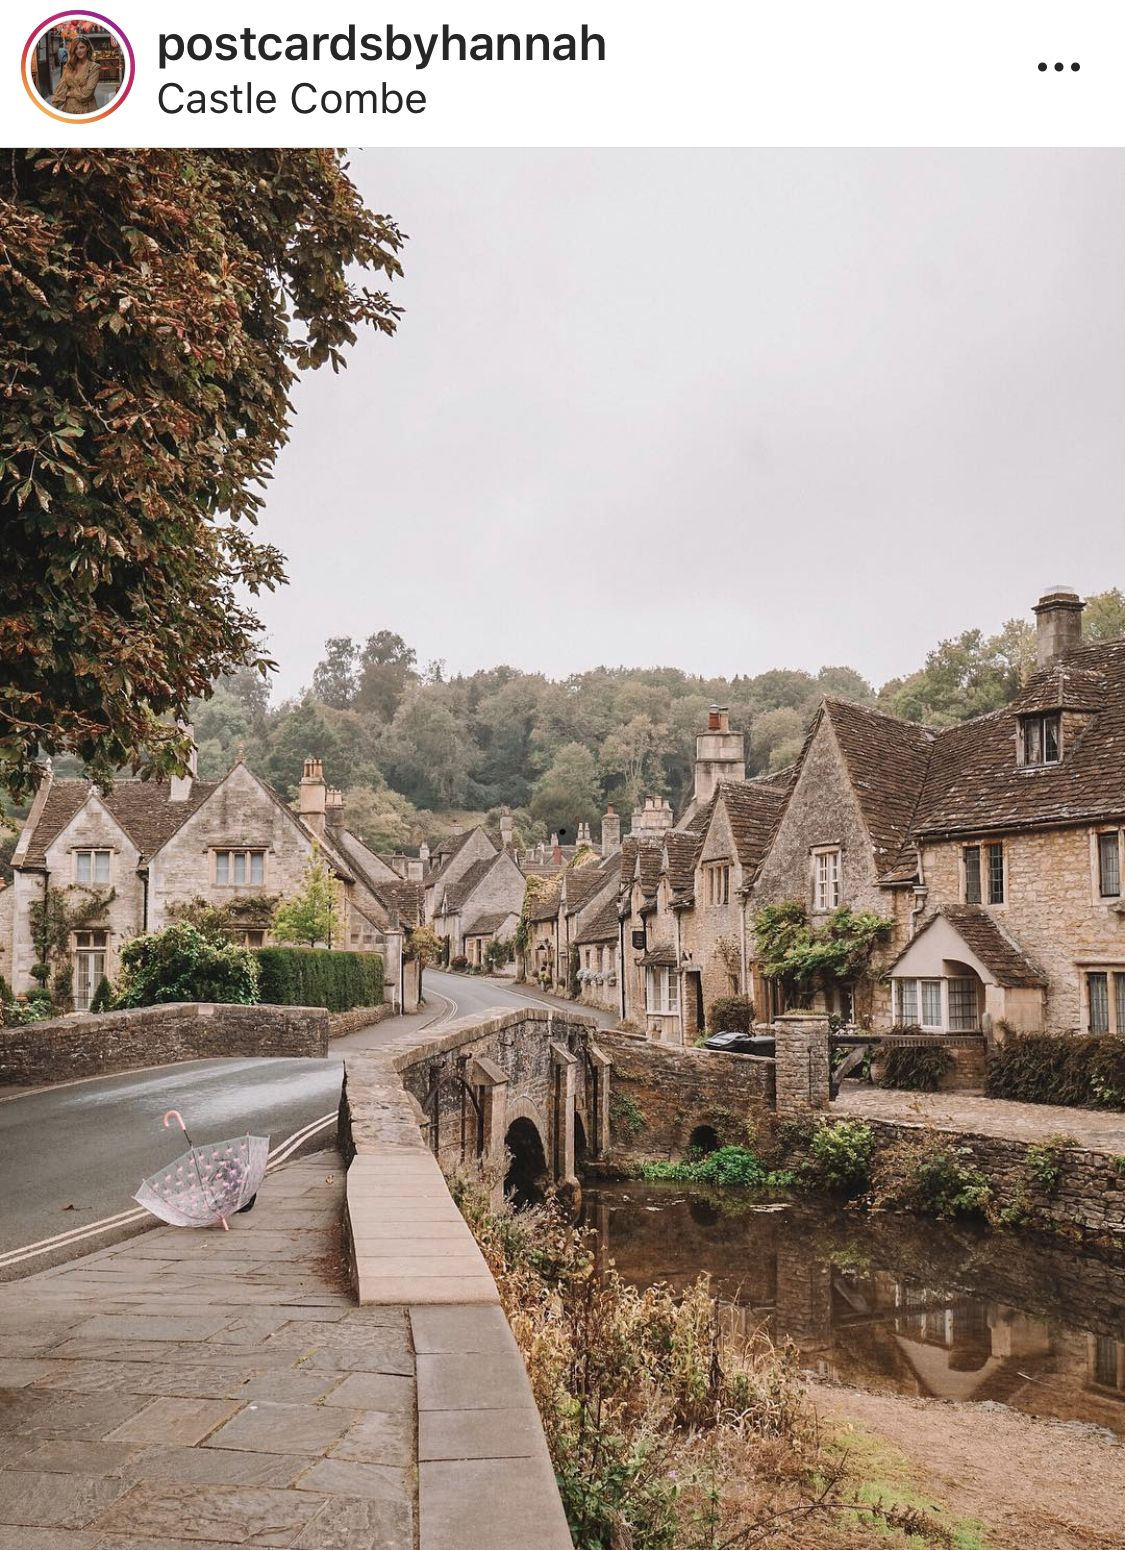 Cotswolds Upper Lower Slaughters Castle Combe Arlington Row In Bibury Stow In The Wold Lacock Abbey Glouces Places Around The World Cotswolds Corfe Castle